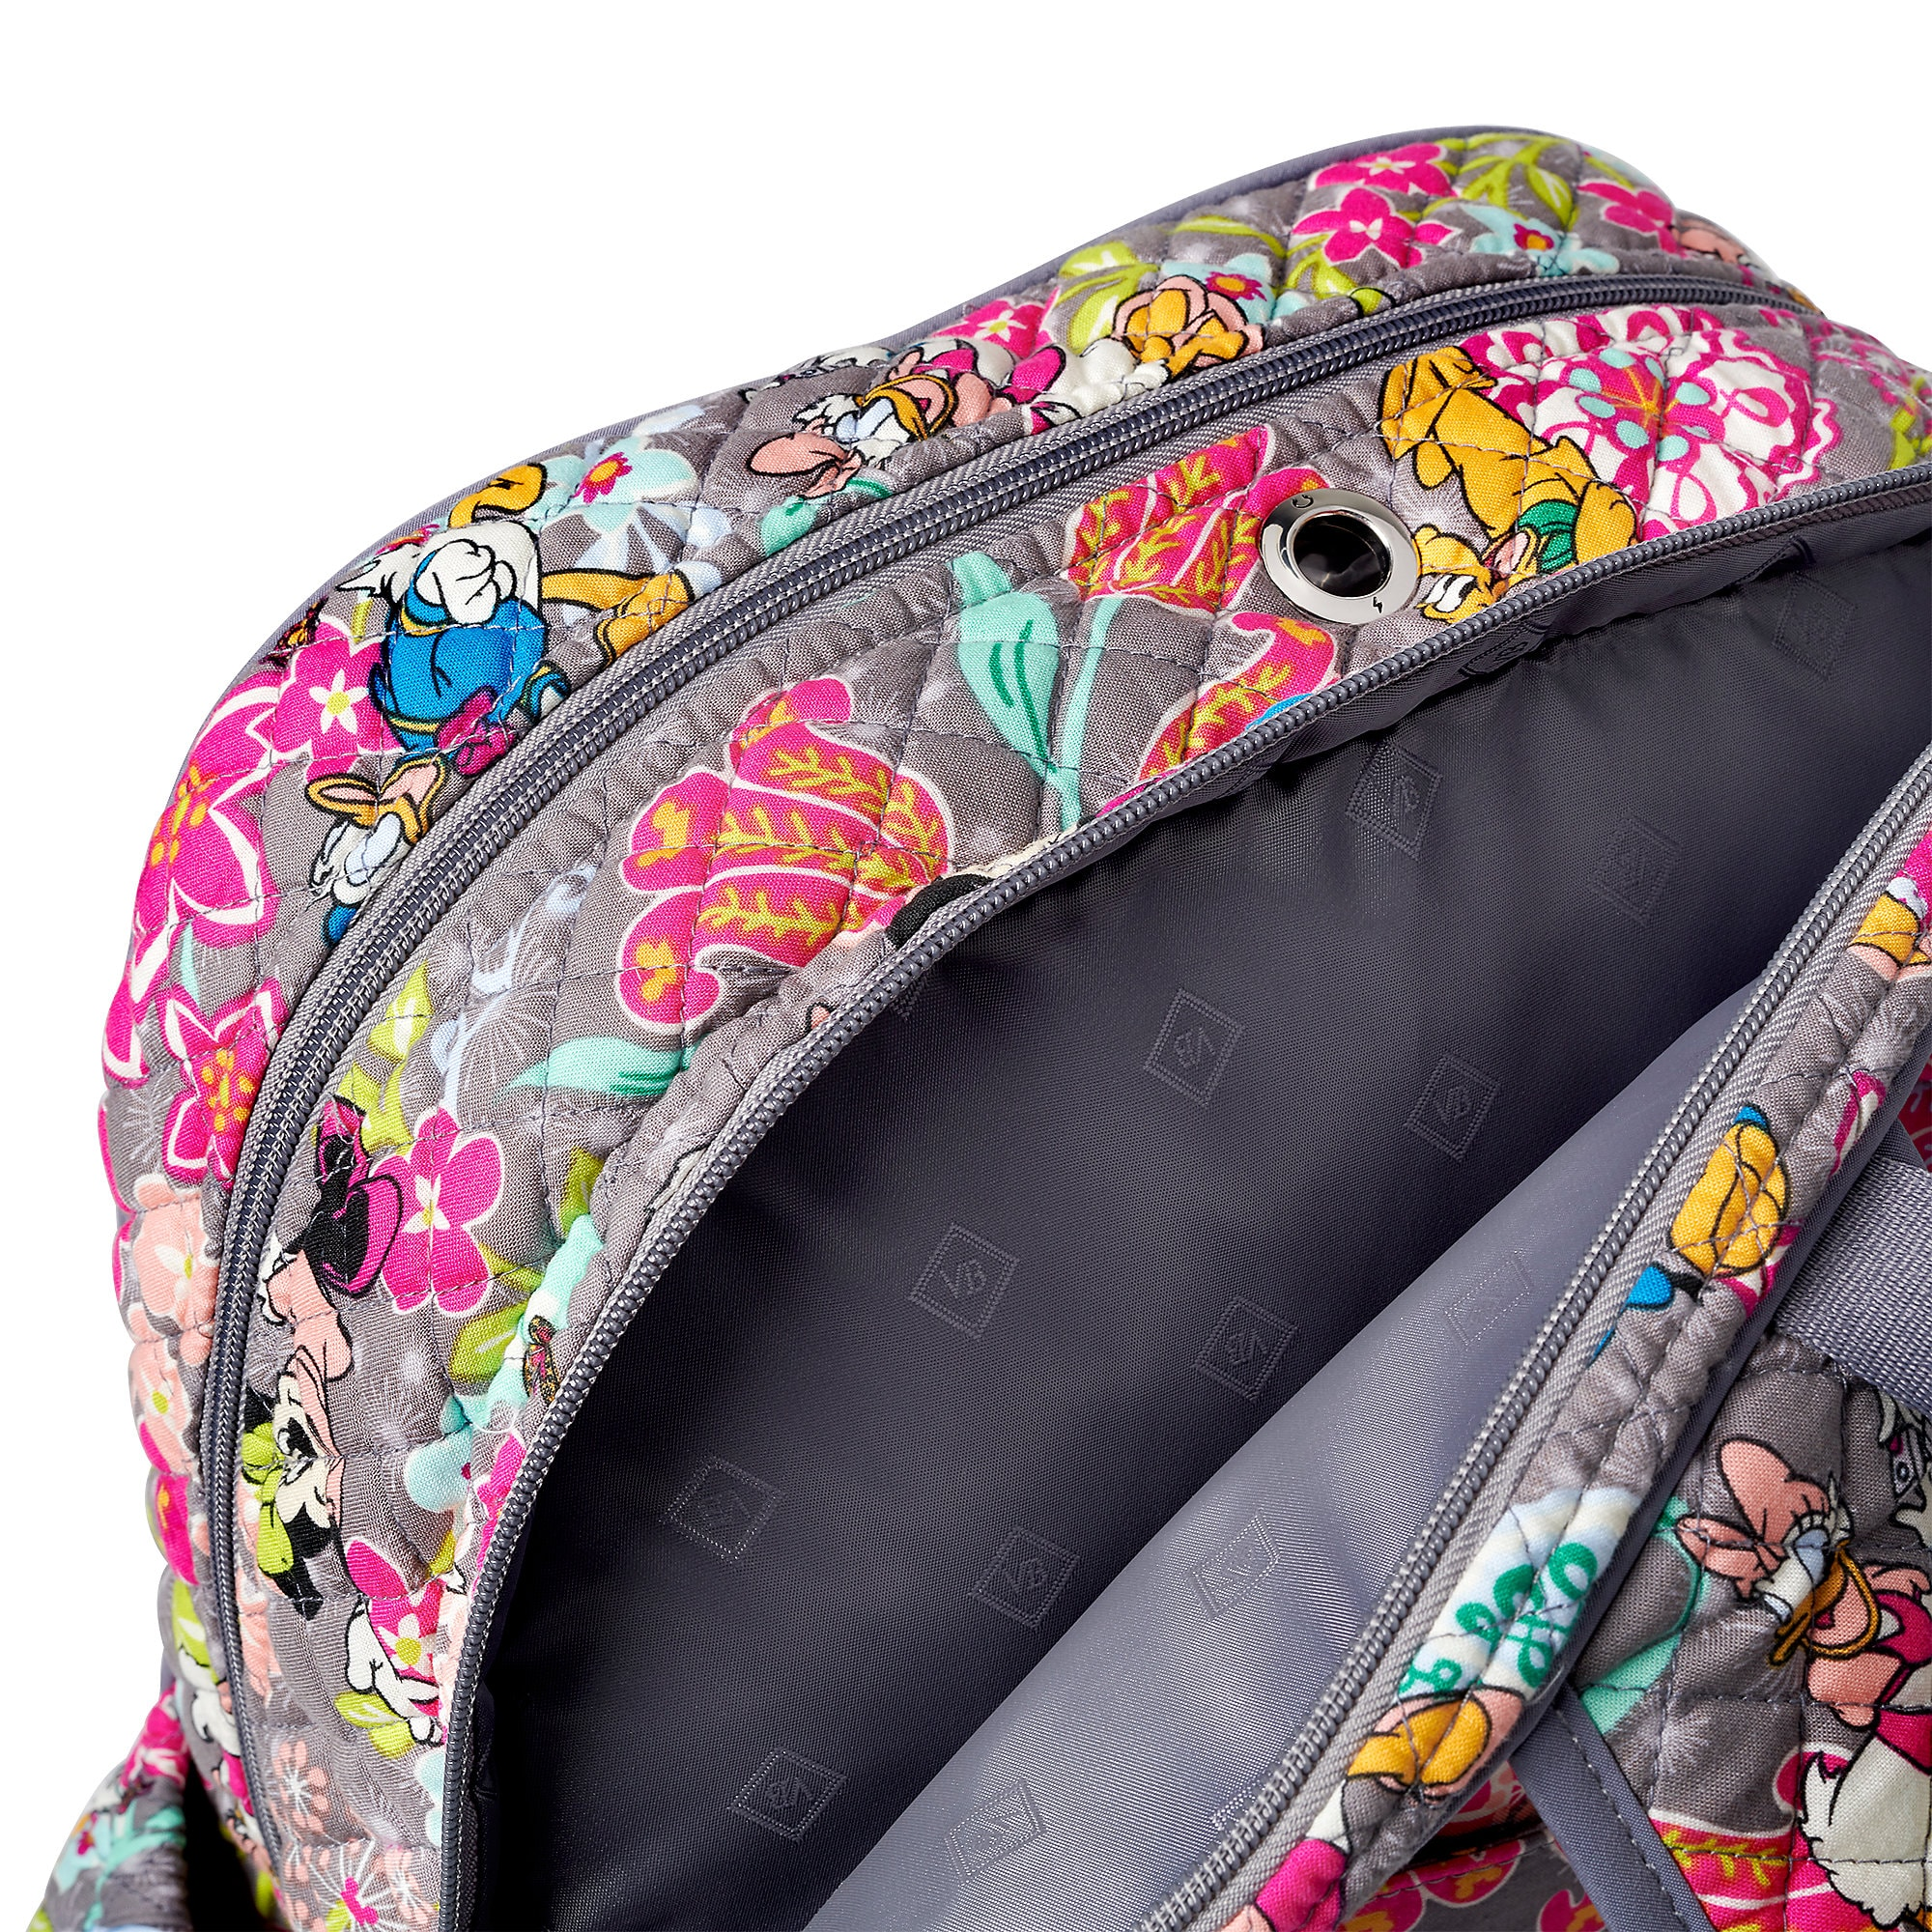 Mickey Mouse and Friends Campus Backpack by Vera Bradley